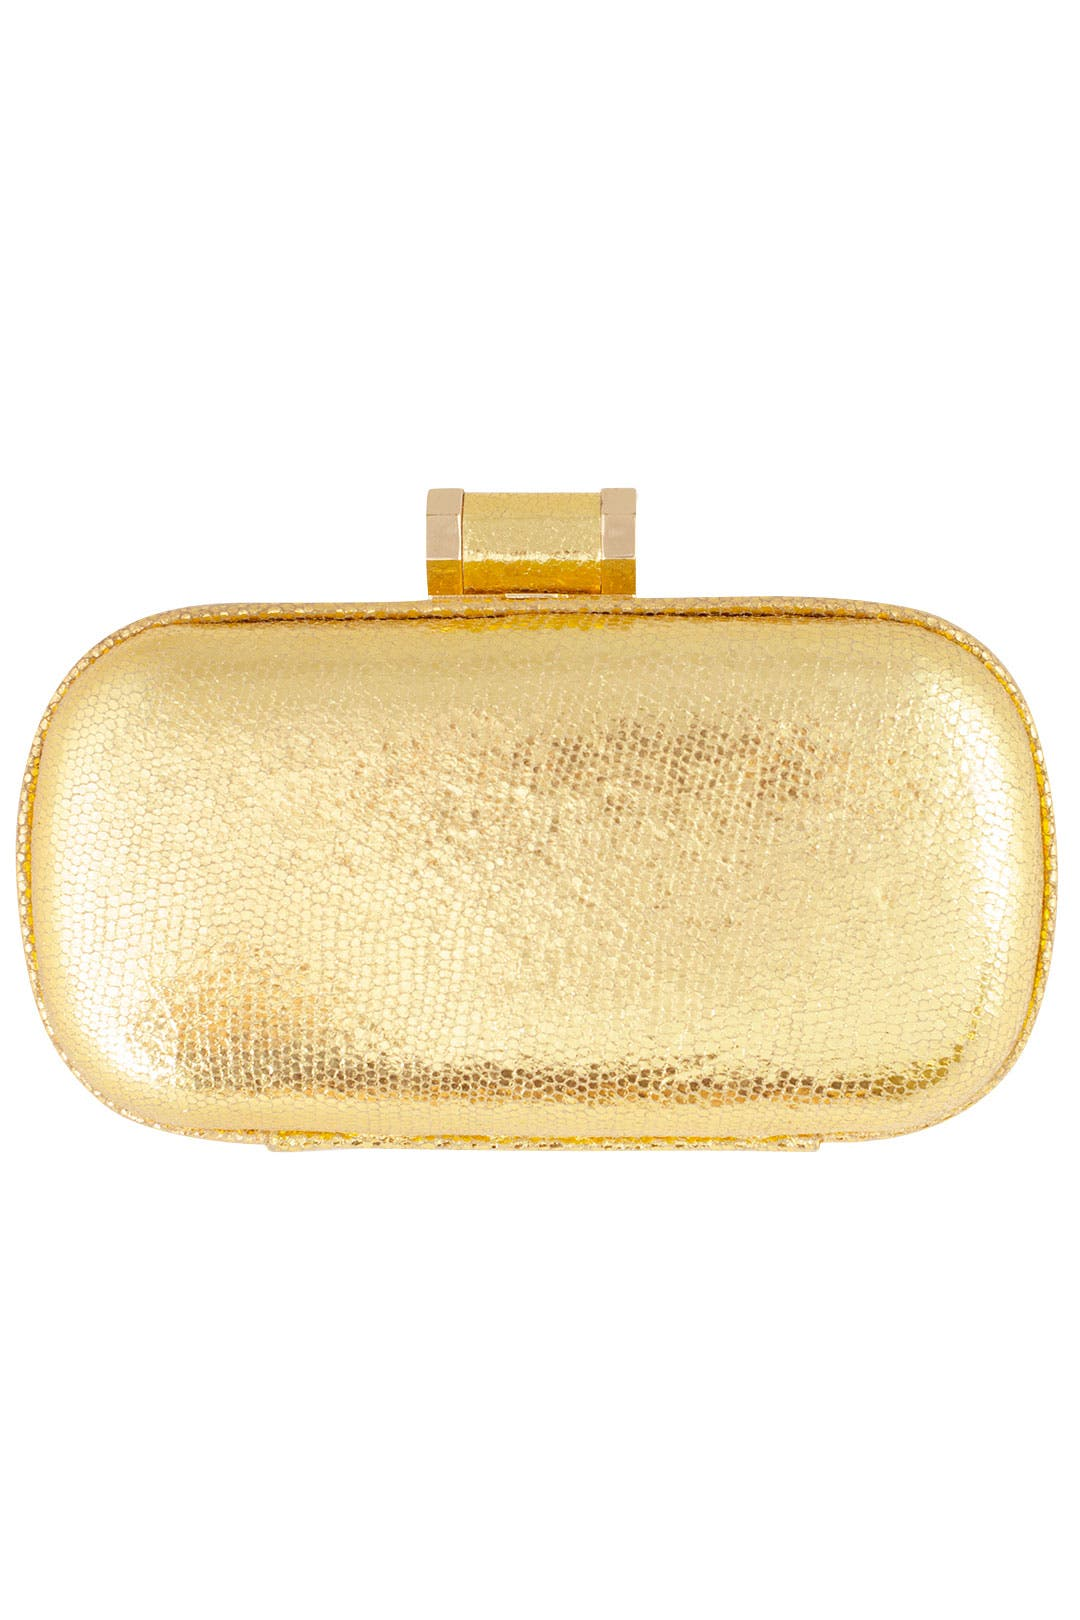 Golden Ticket Clutch by Halston Heritage Handbags